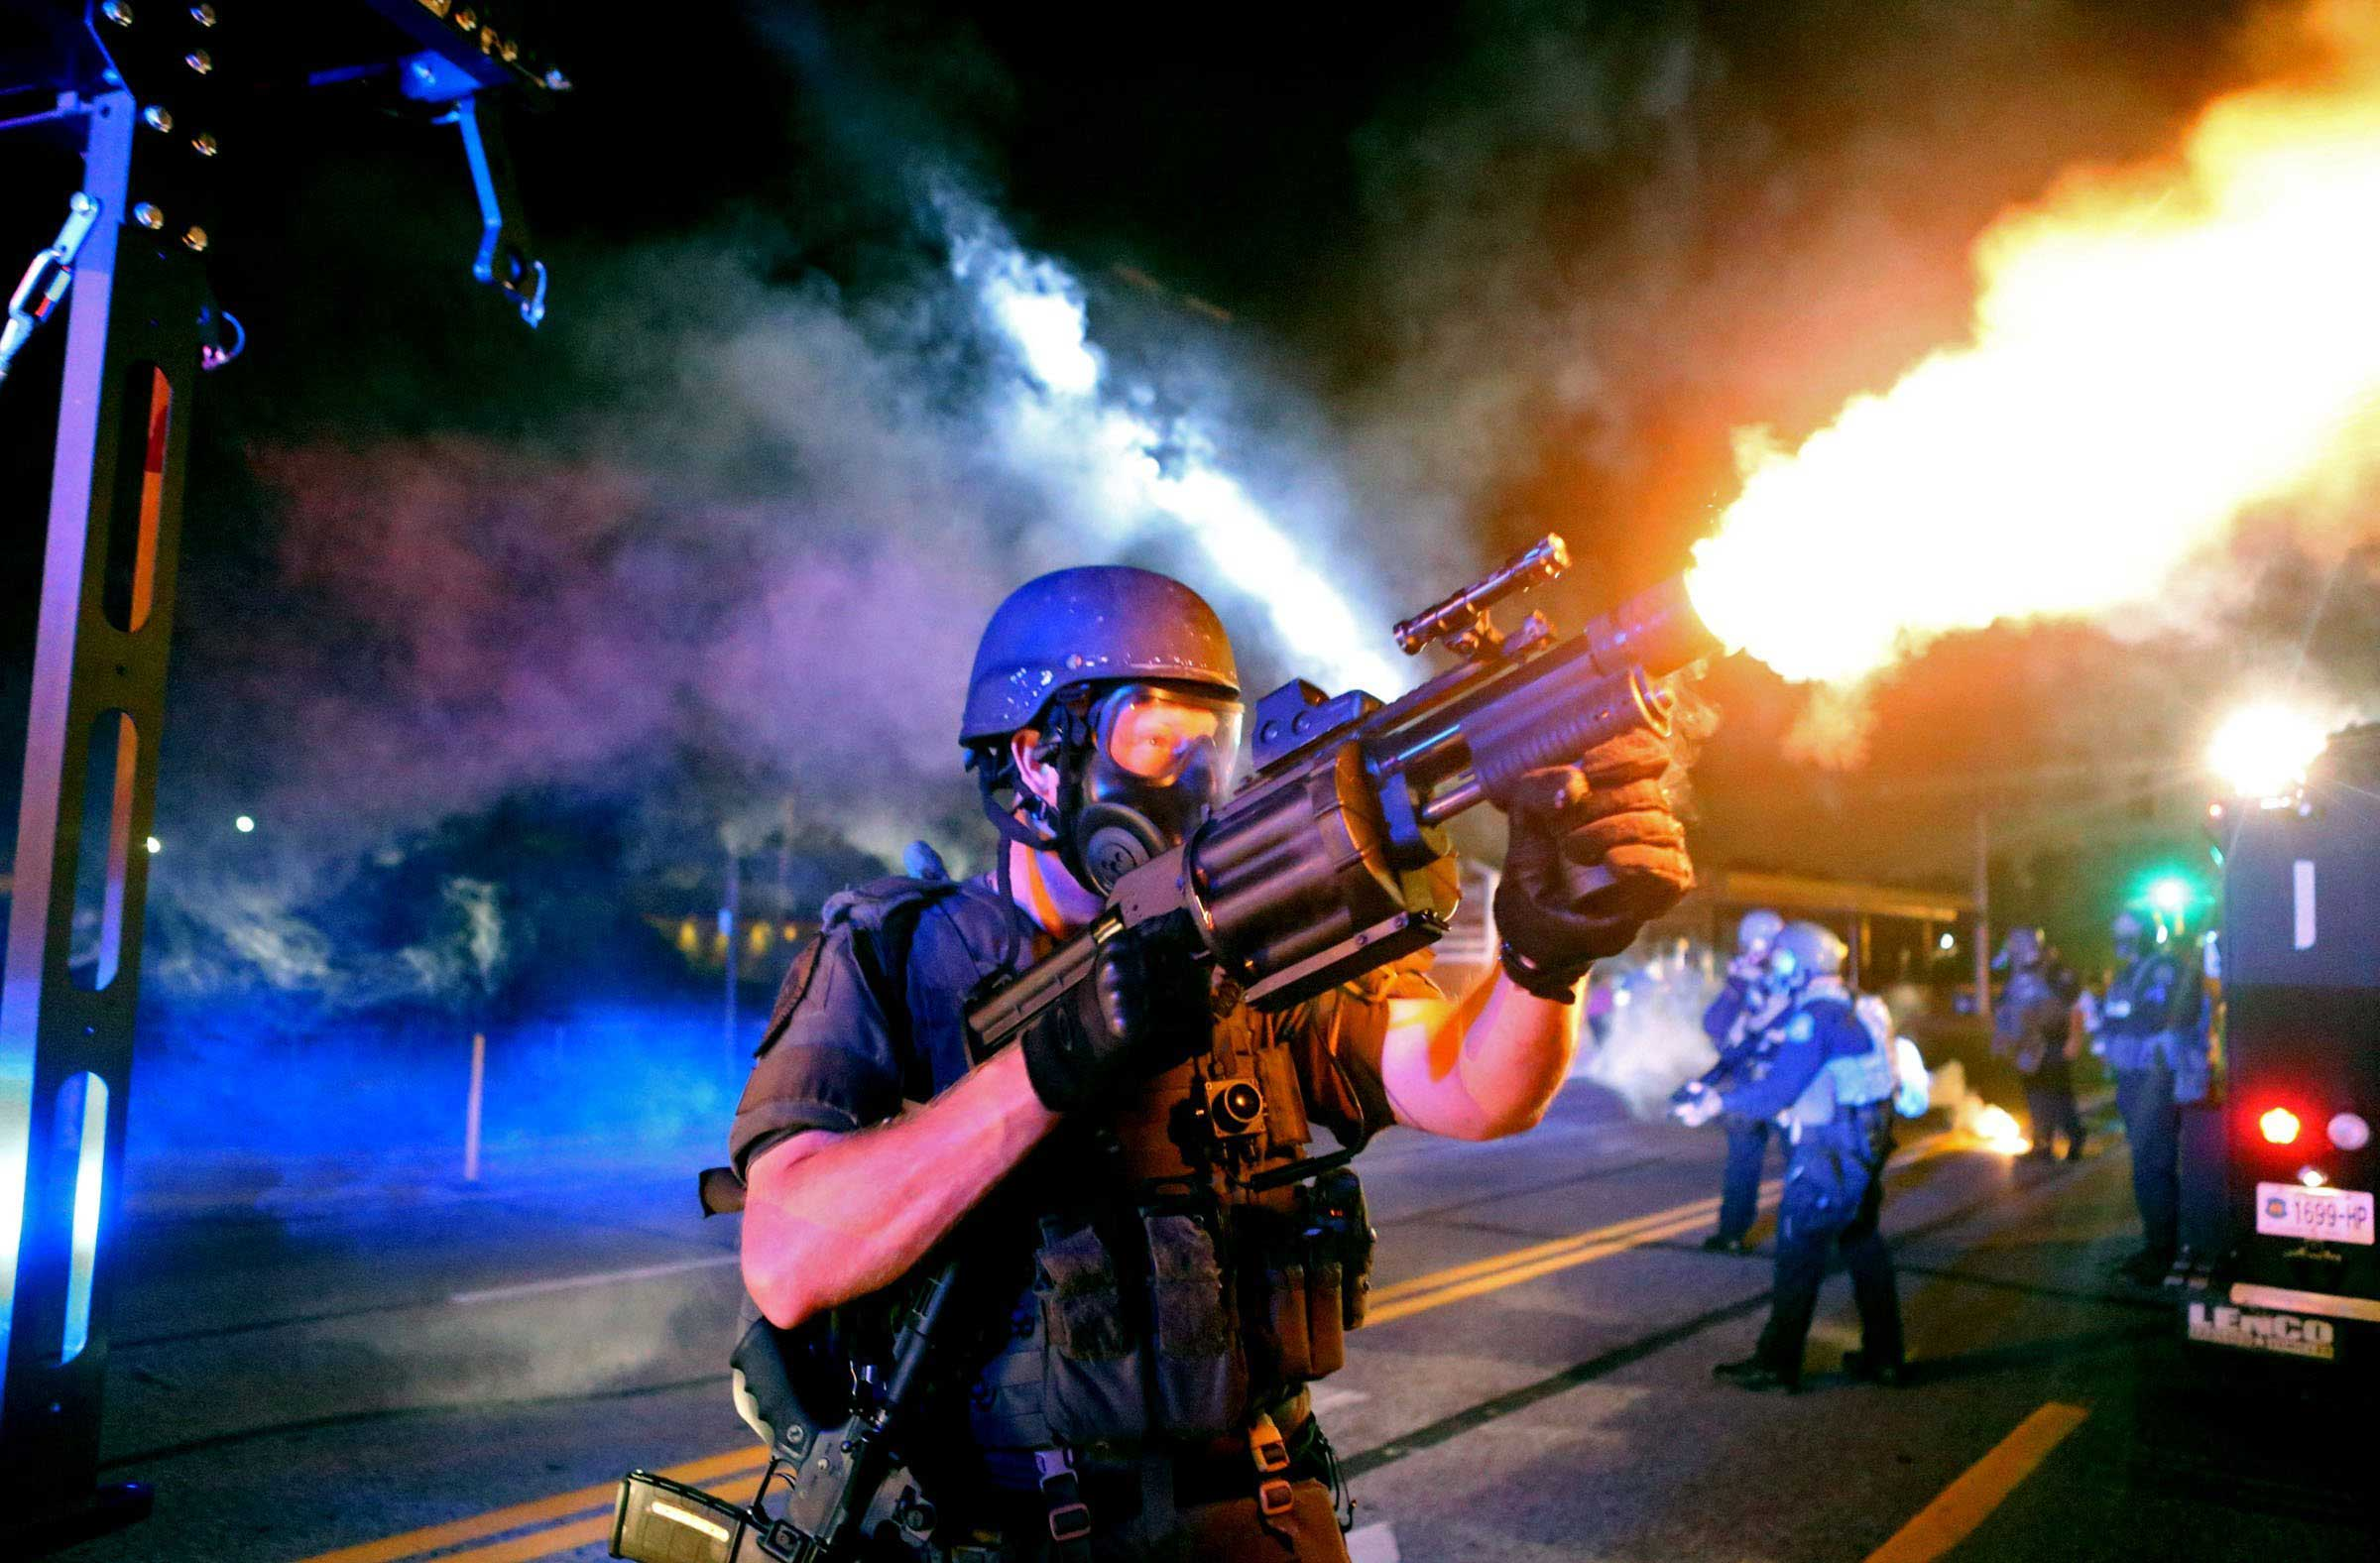 Aug. 18, 2014. Police fire tear gas in the direction of where bottles were thrown from crowds gathered near the QuikTrip on W. Florissant Avenue.